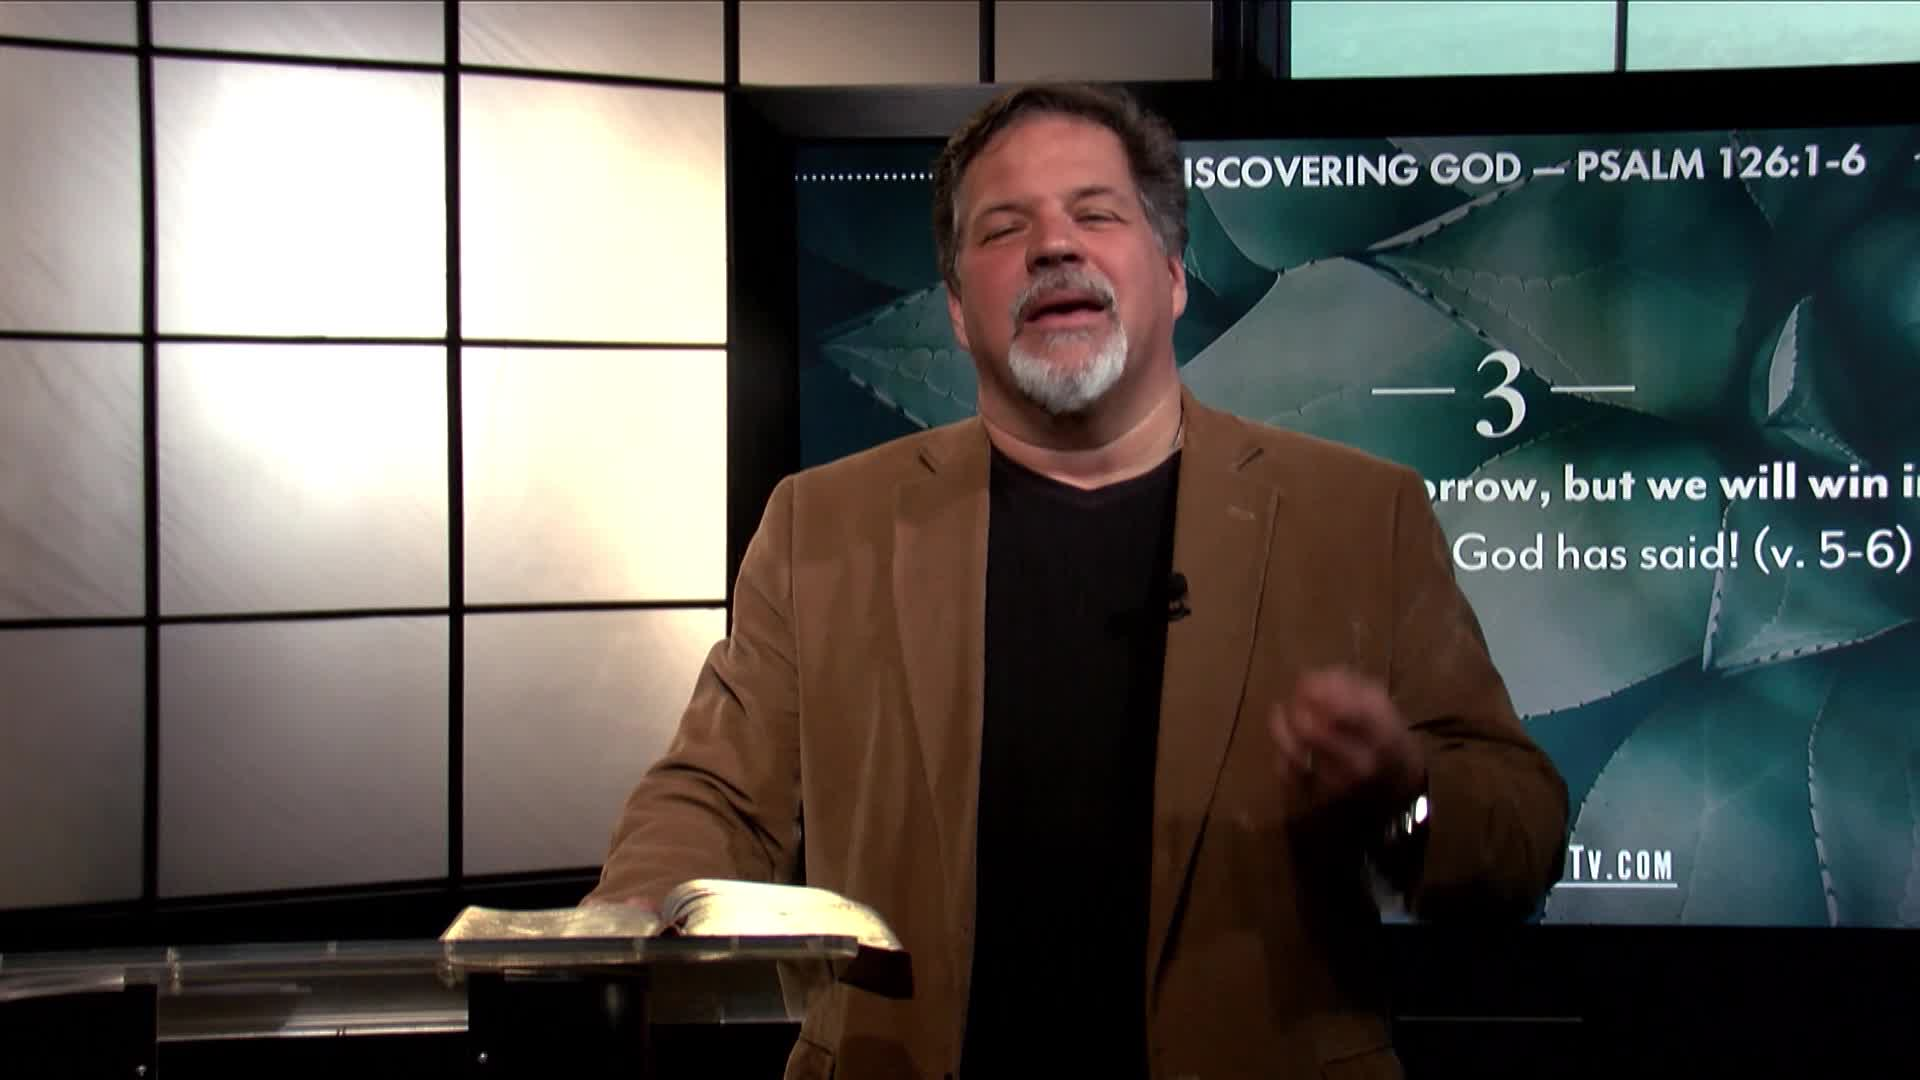 Bible Discovery - Psalm 126 What is God Saying